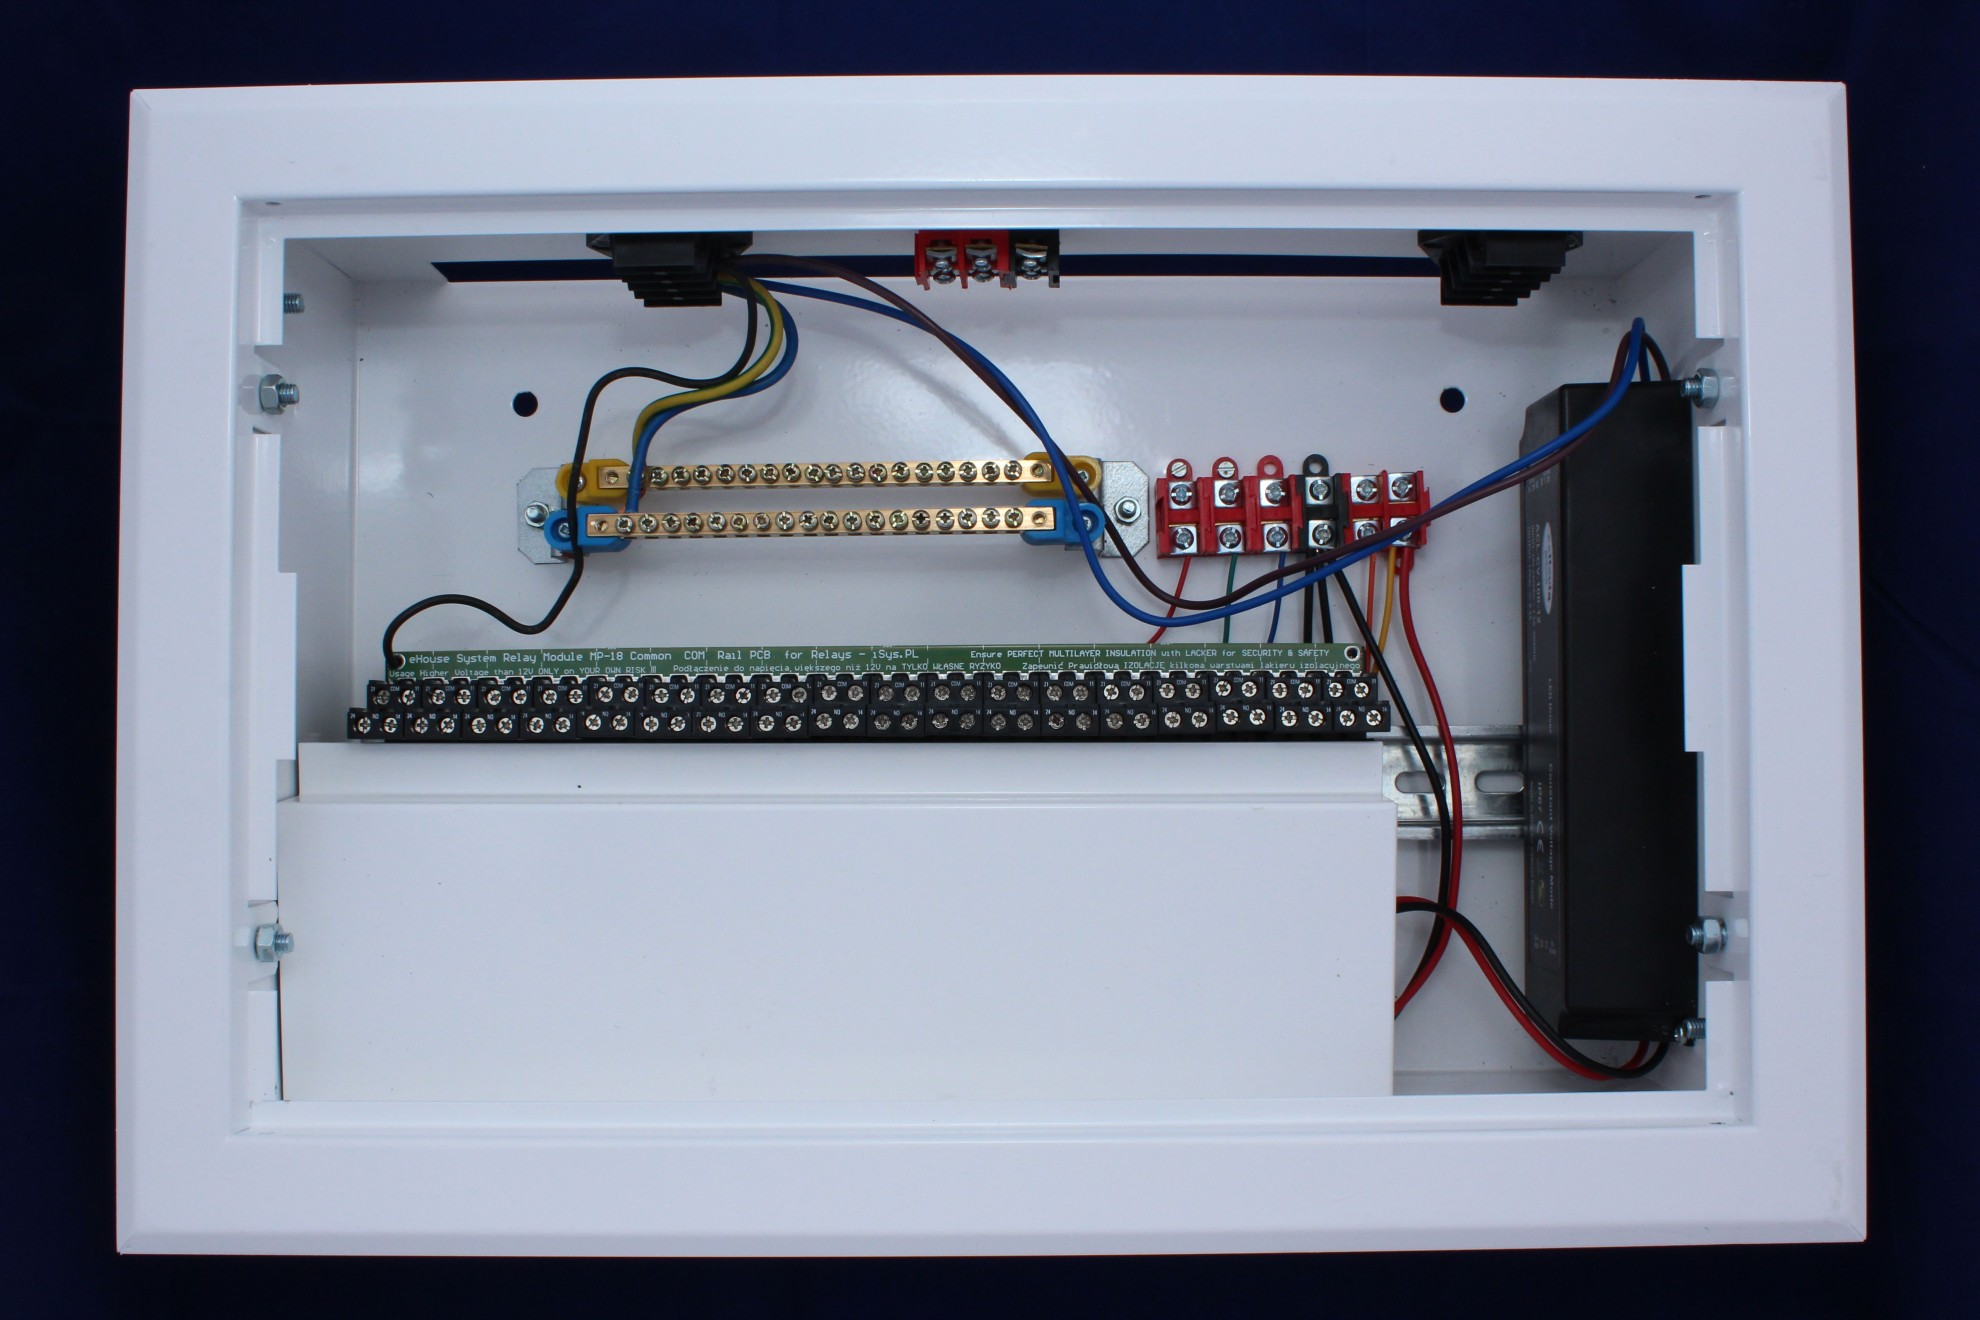 Ehouse Lan Smart Home Mini Switchboard Diy Smart Home Intelligent Home Building Automation Bms